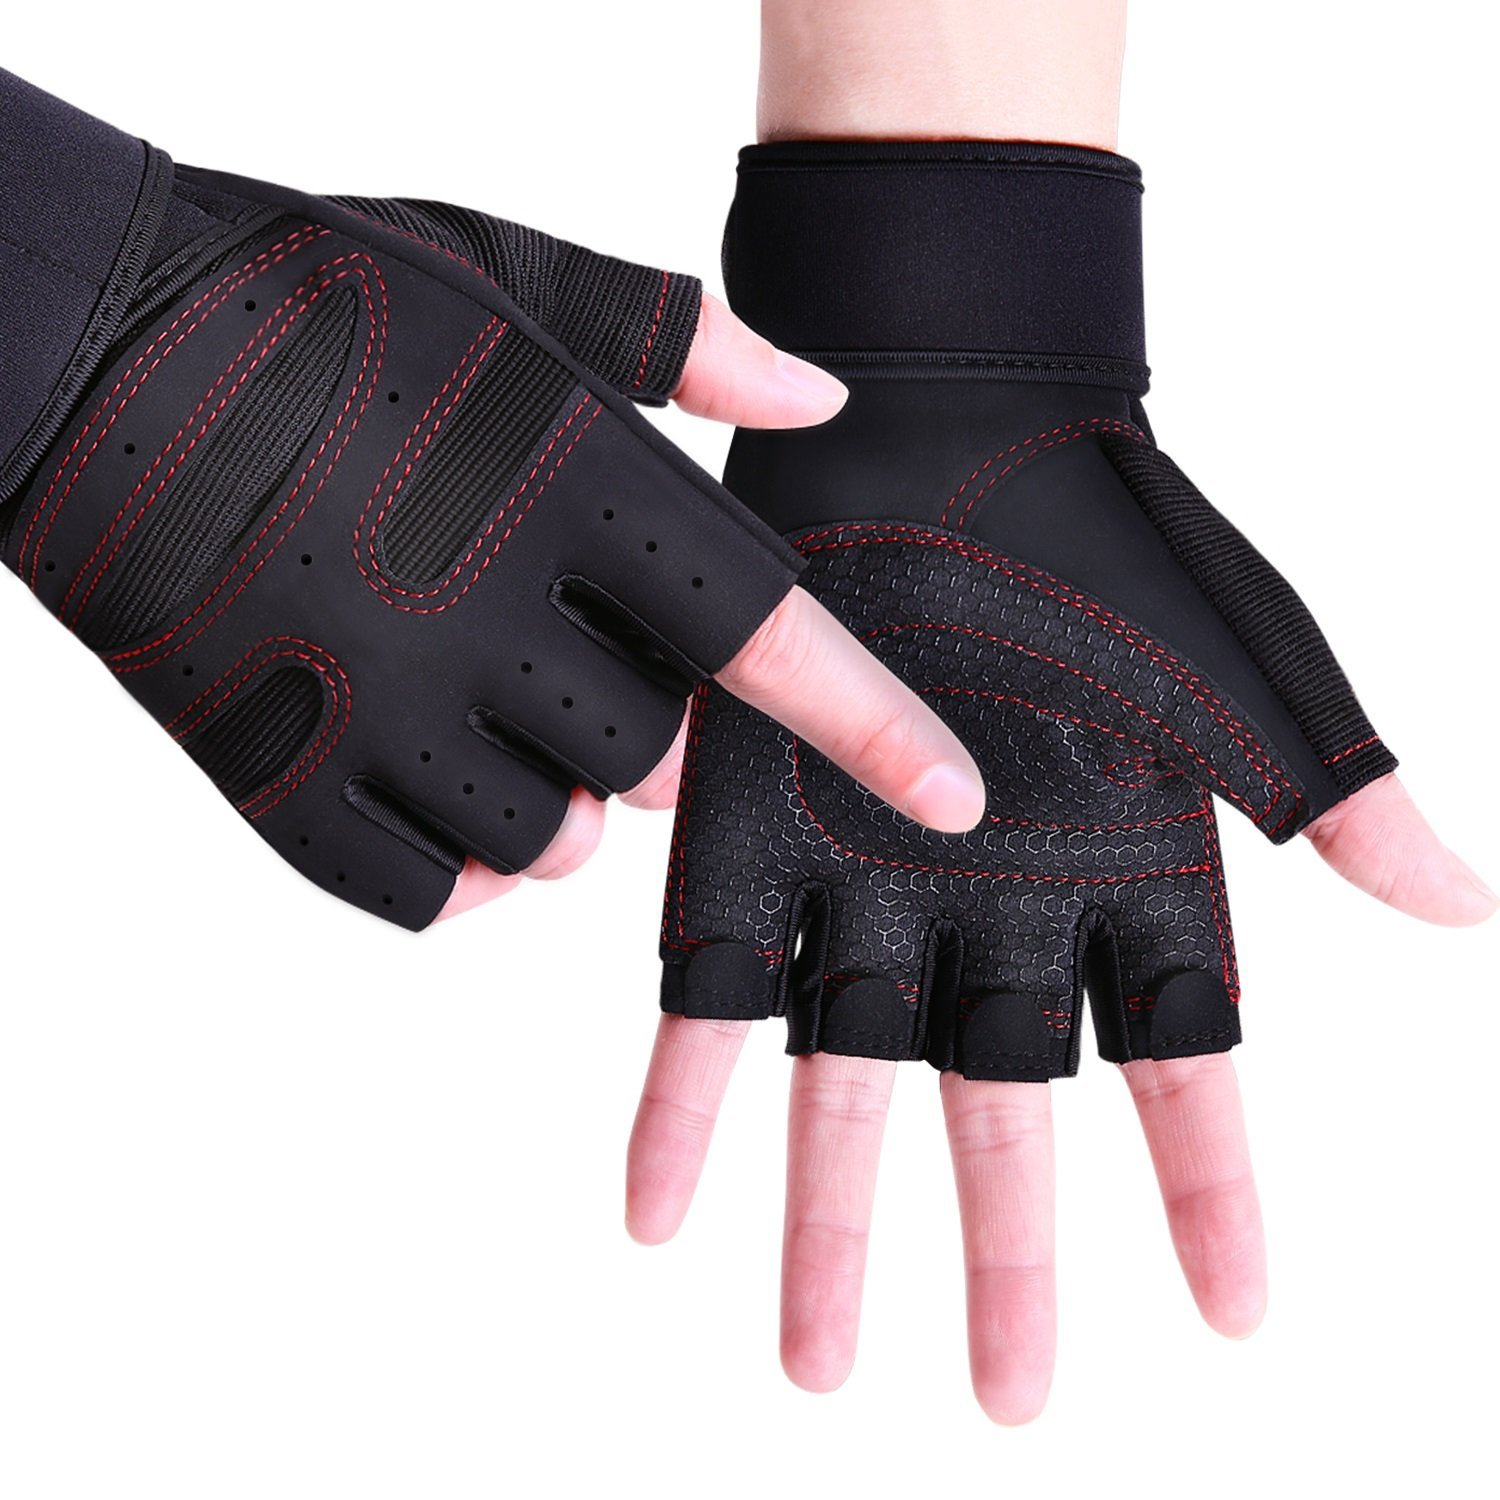 EVO Leather Cycling Gloves Weightlifting Gym Neoprene Support Wrist Wraps Straps